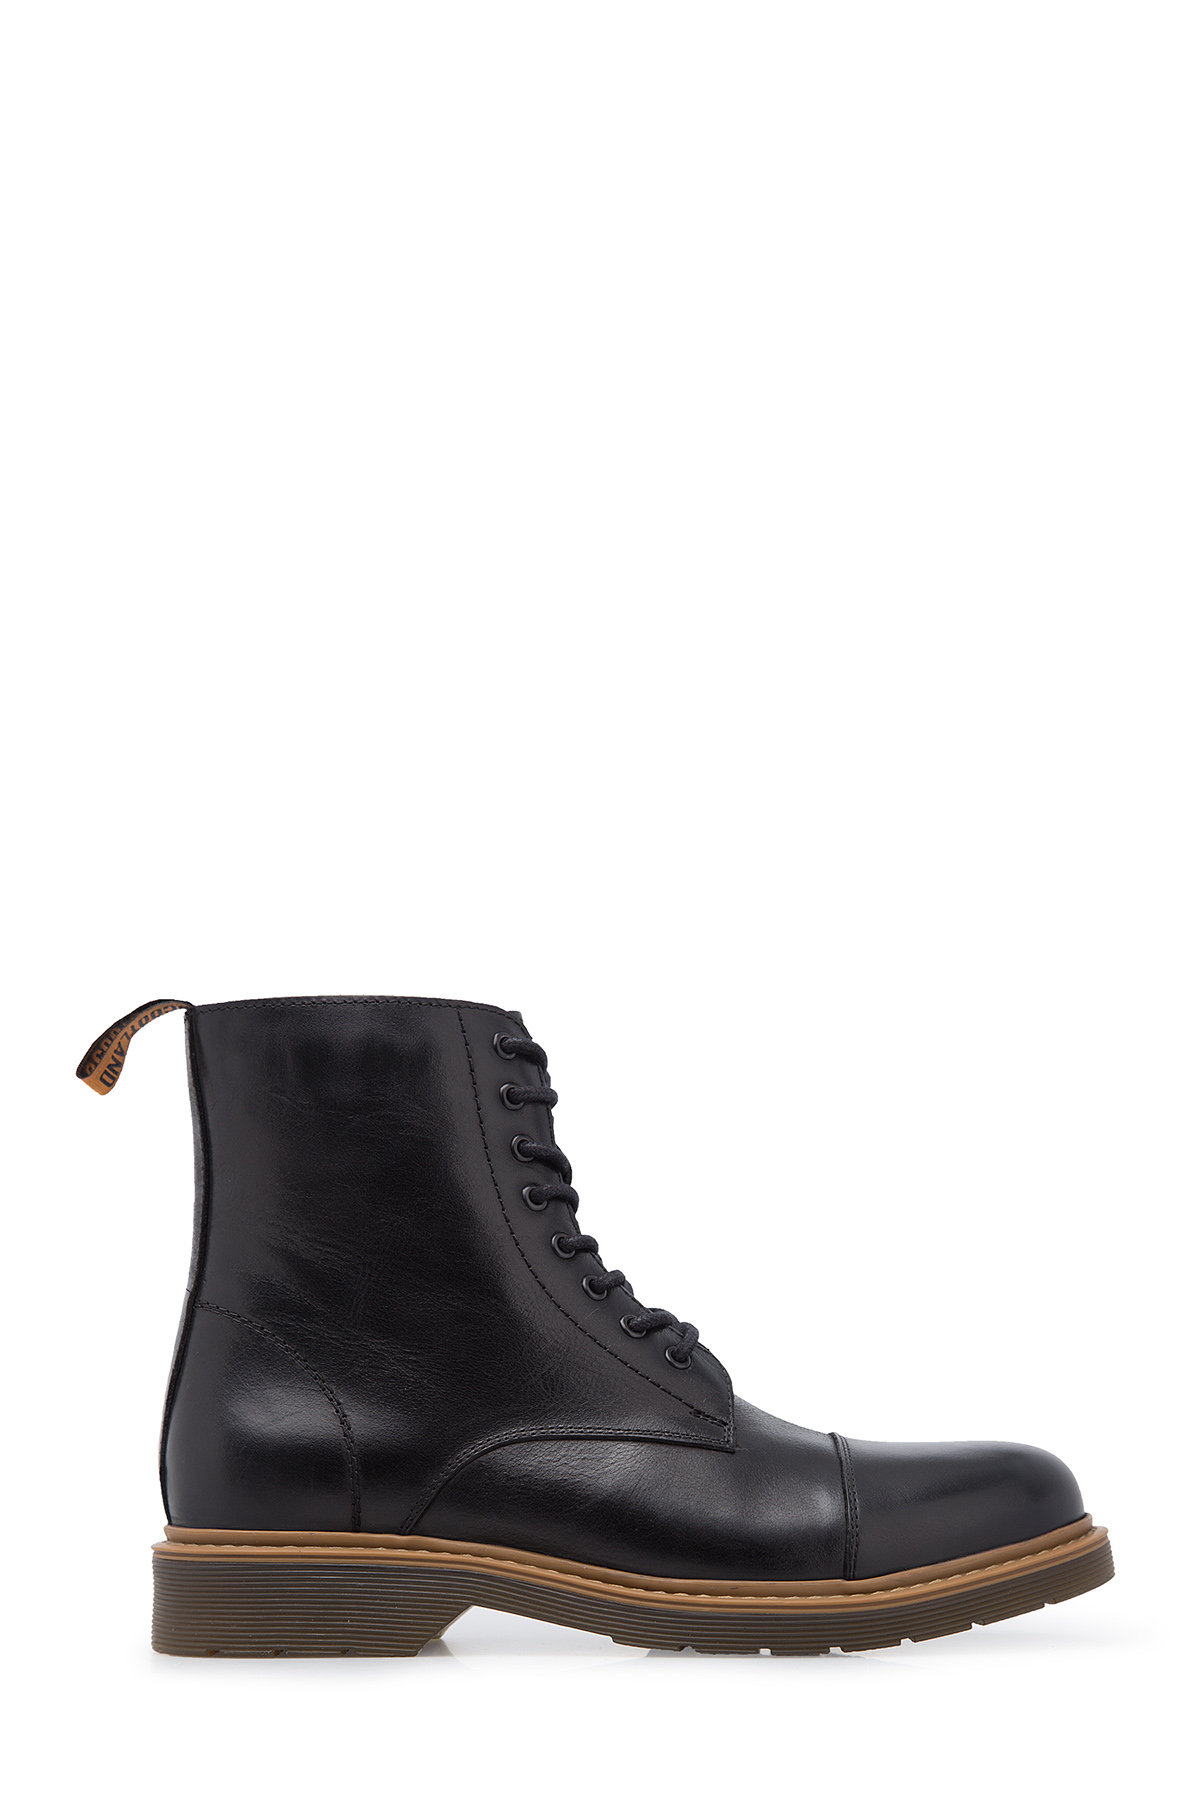 Scootland Leather Boots MEN 'S BOOTS 15201504